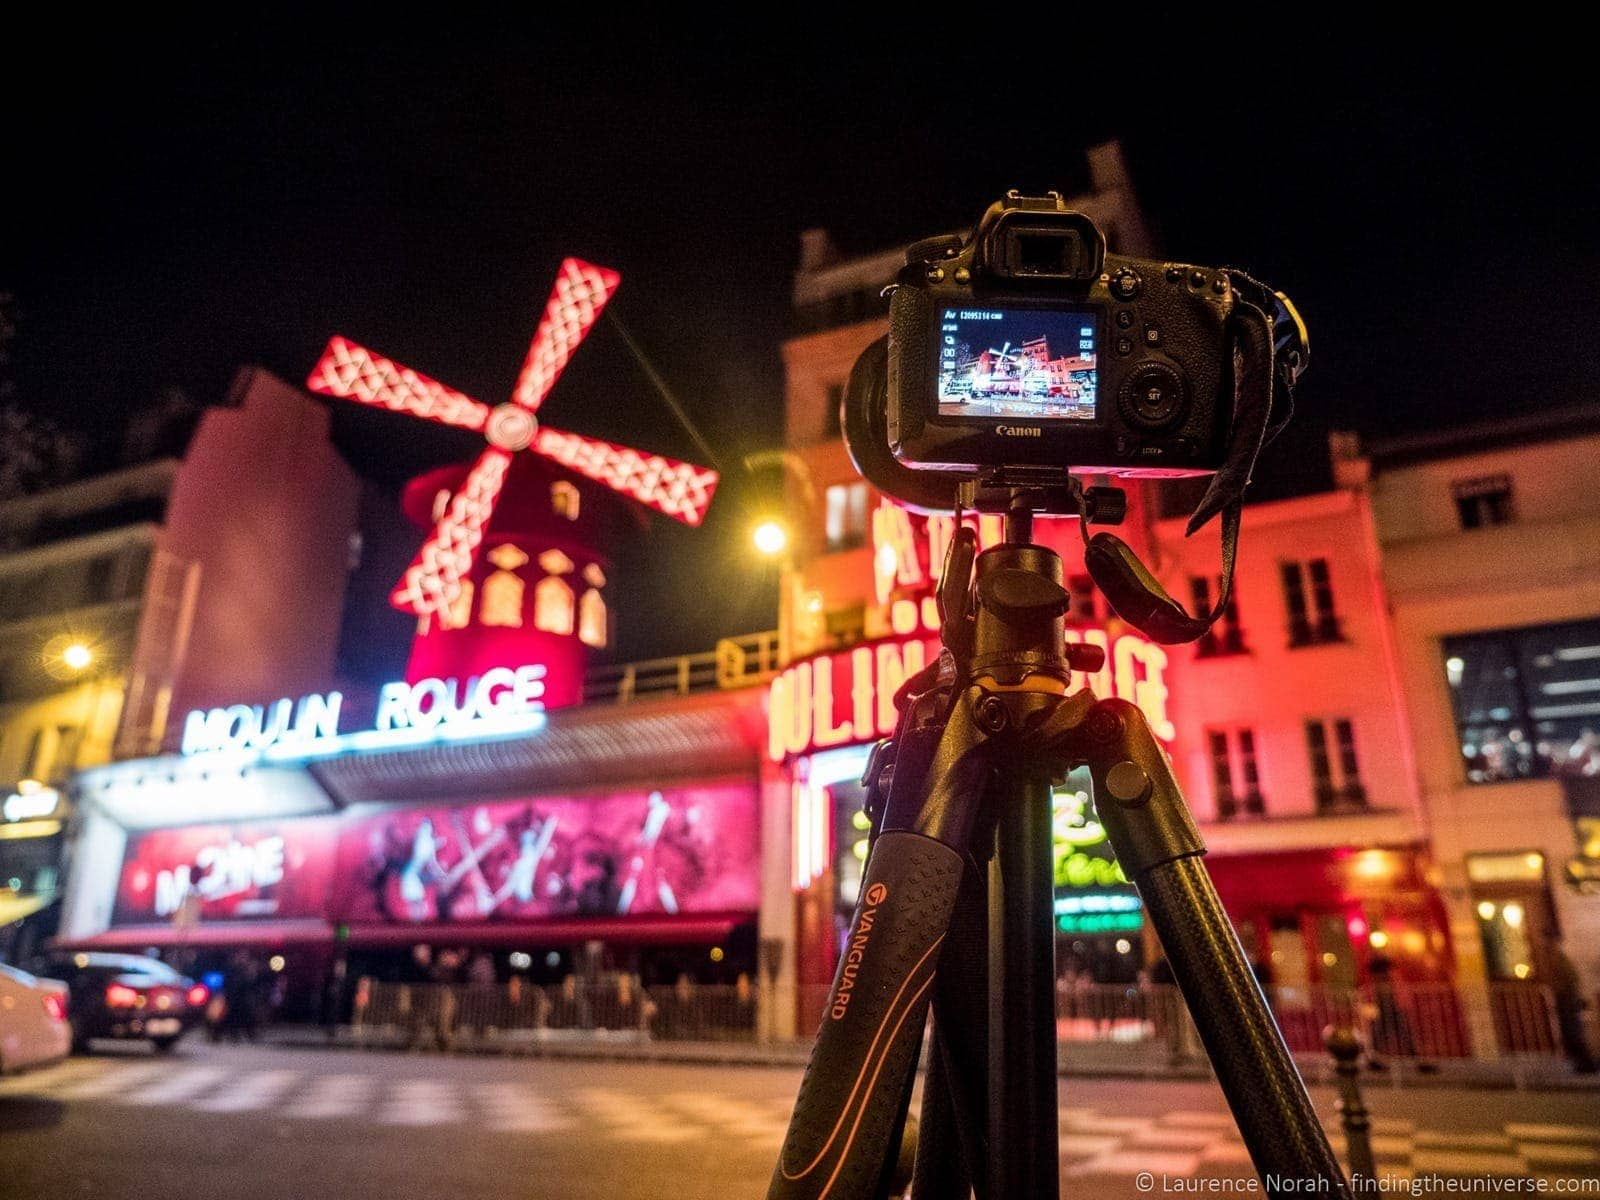 VEO tripod moulin rouge